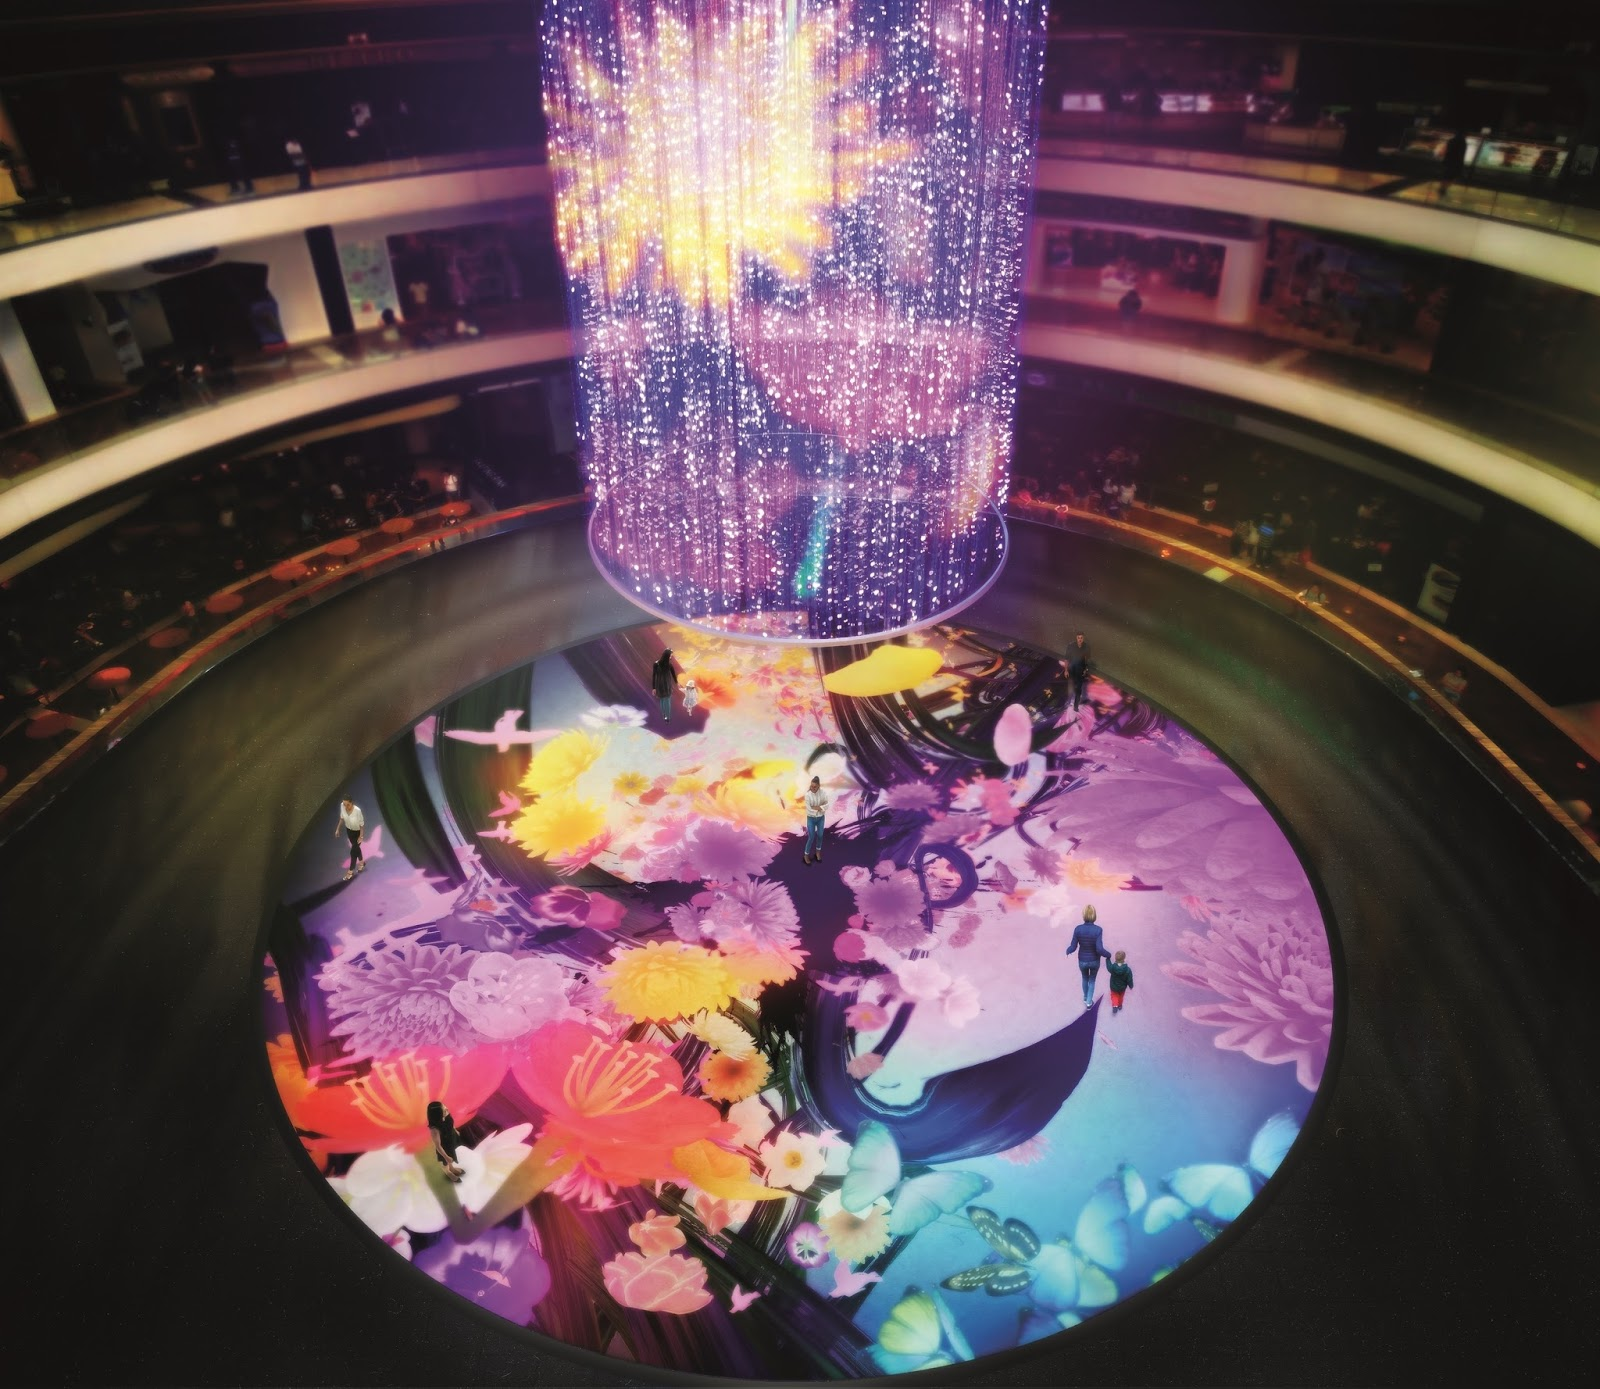 Go see this awesome light installation at Marina Bay Sands by Japan's teamLab!